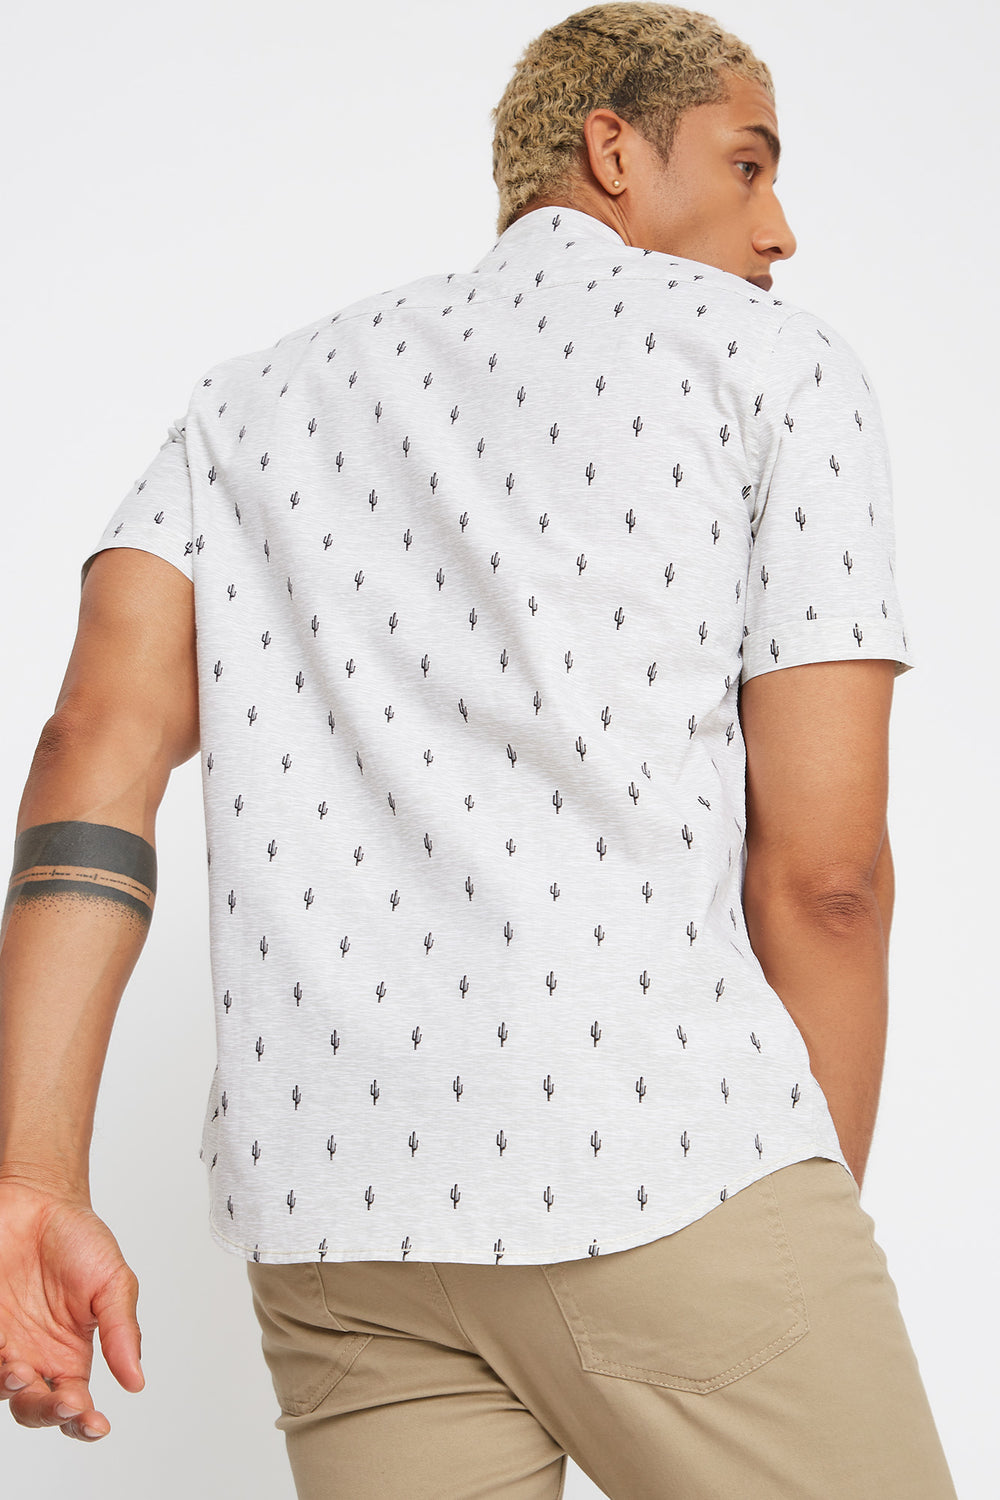 Printed Pocket Button-Up Short Sleeve Shirt Heather Grey